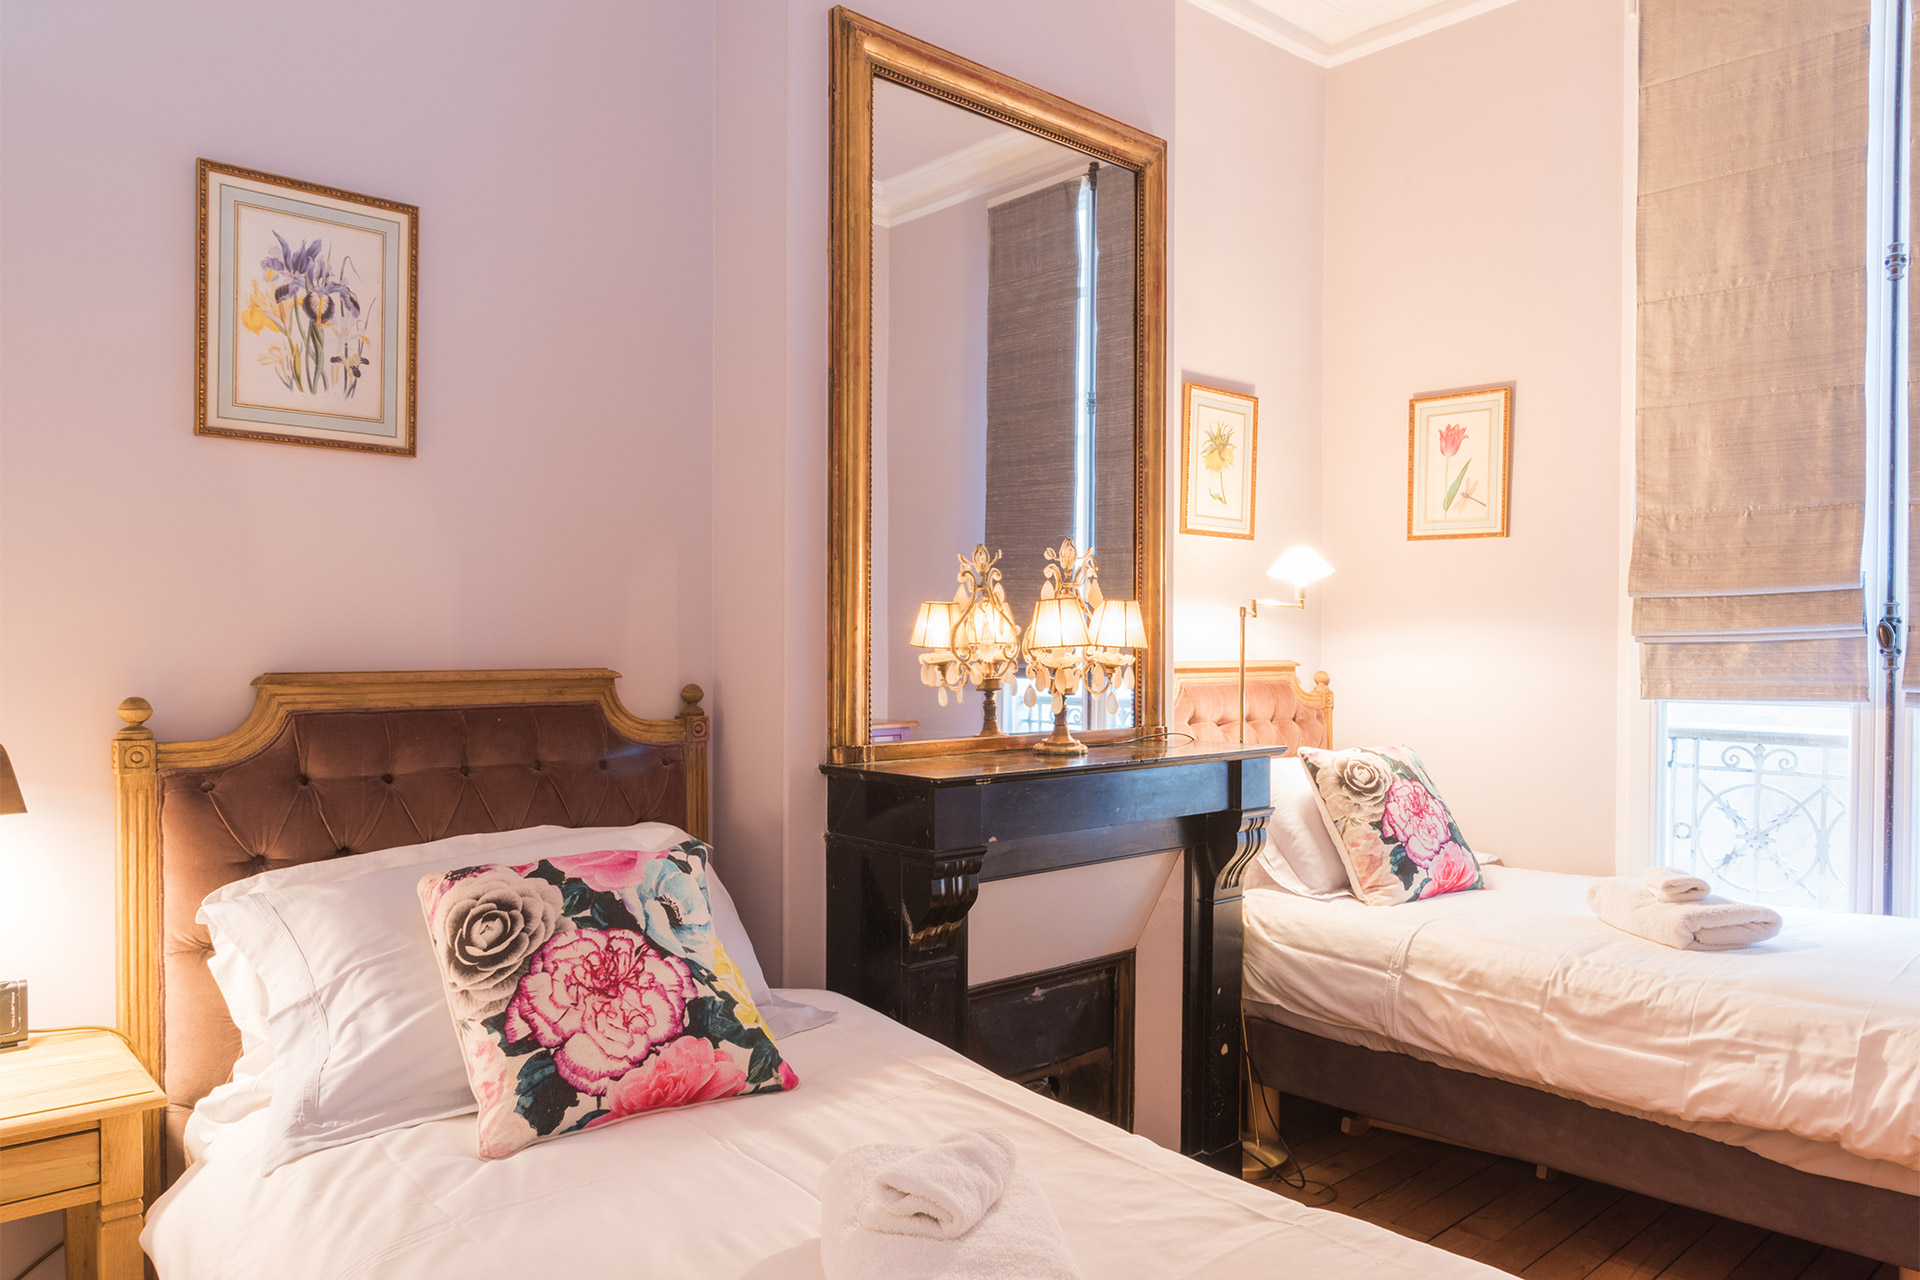 Second bedroom with two single beds in the Maubert vacation rental offered by Paris Perfect